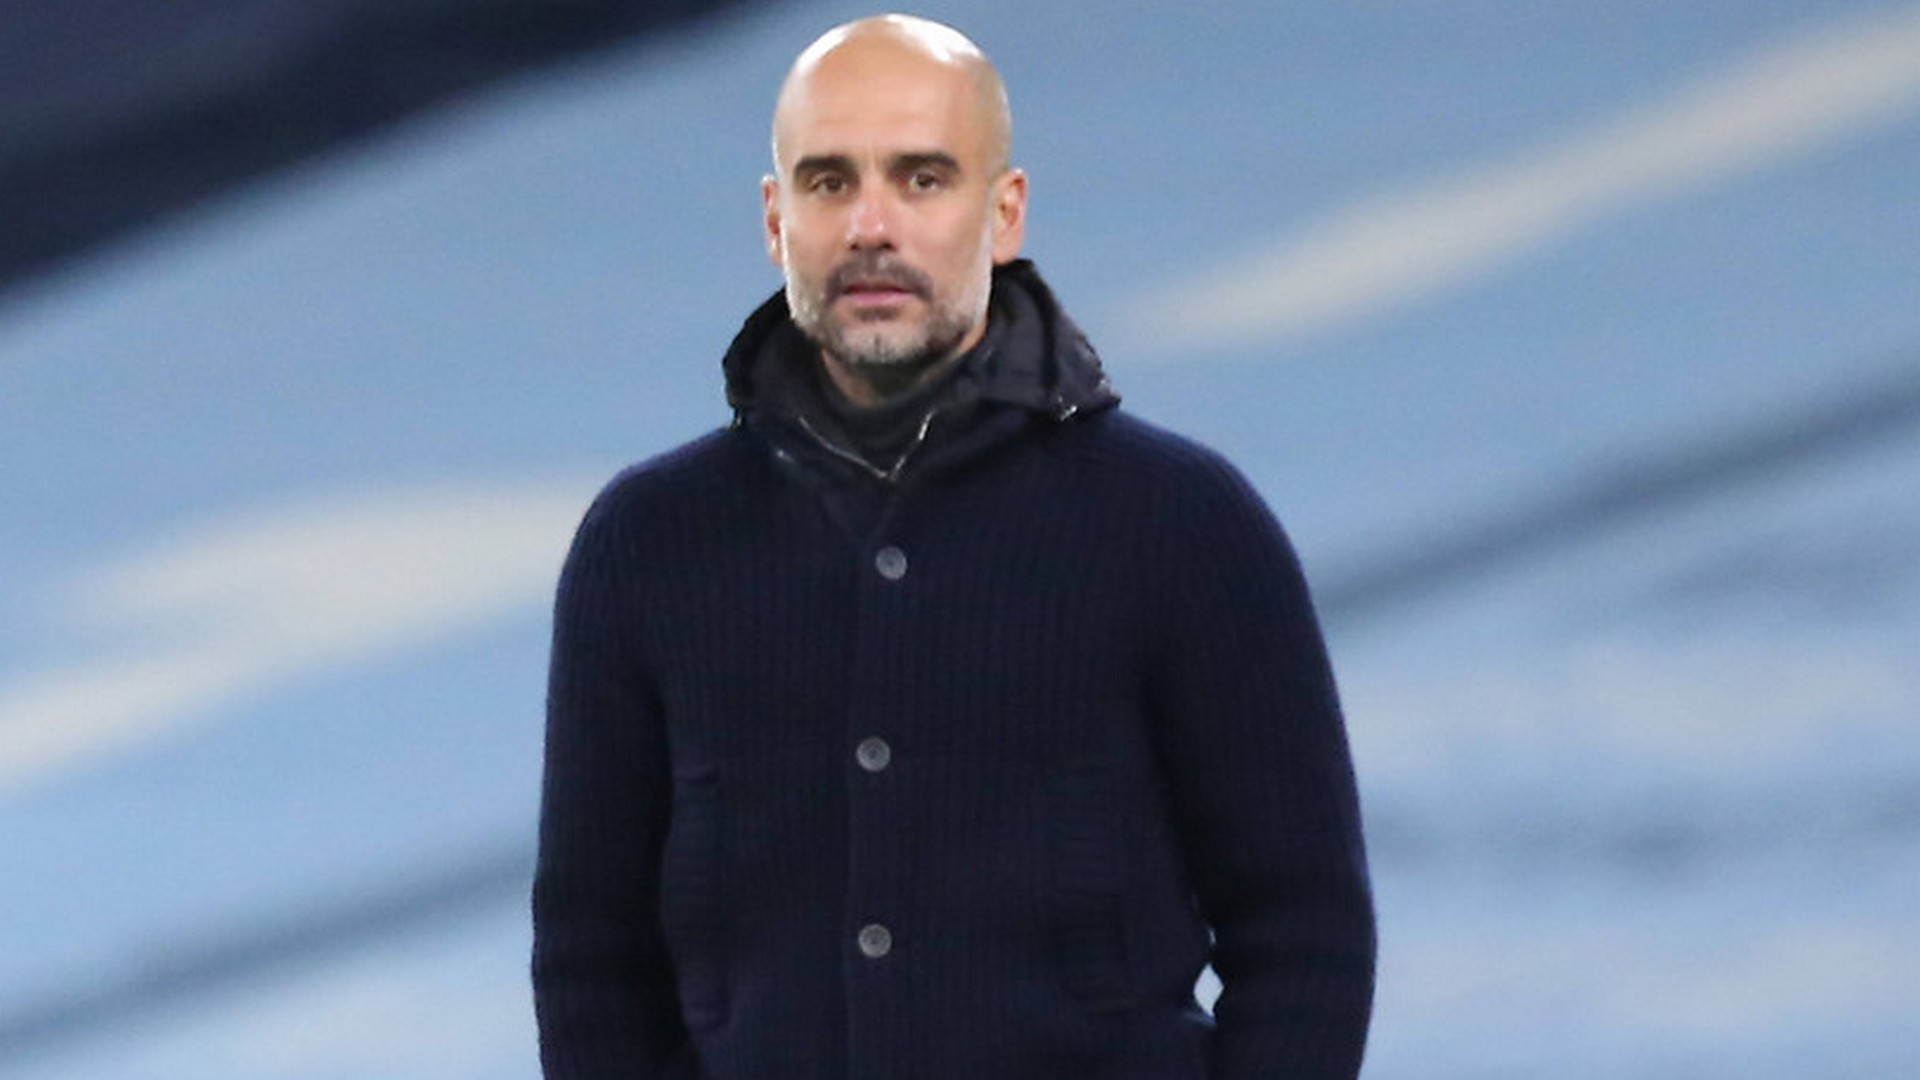 'One day we will break everything' - Guardiola feels Manchester City are ready to explode after Olympiacos win